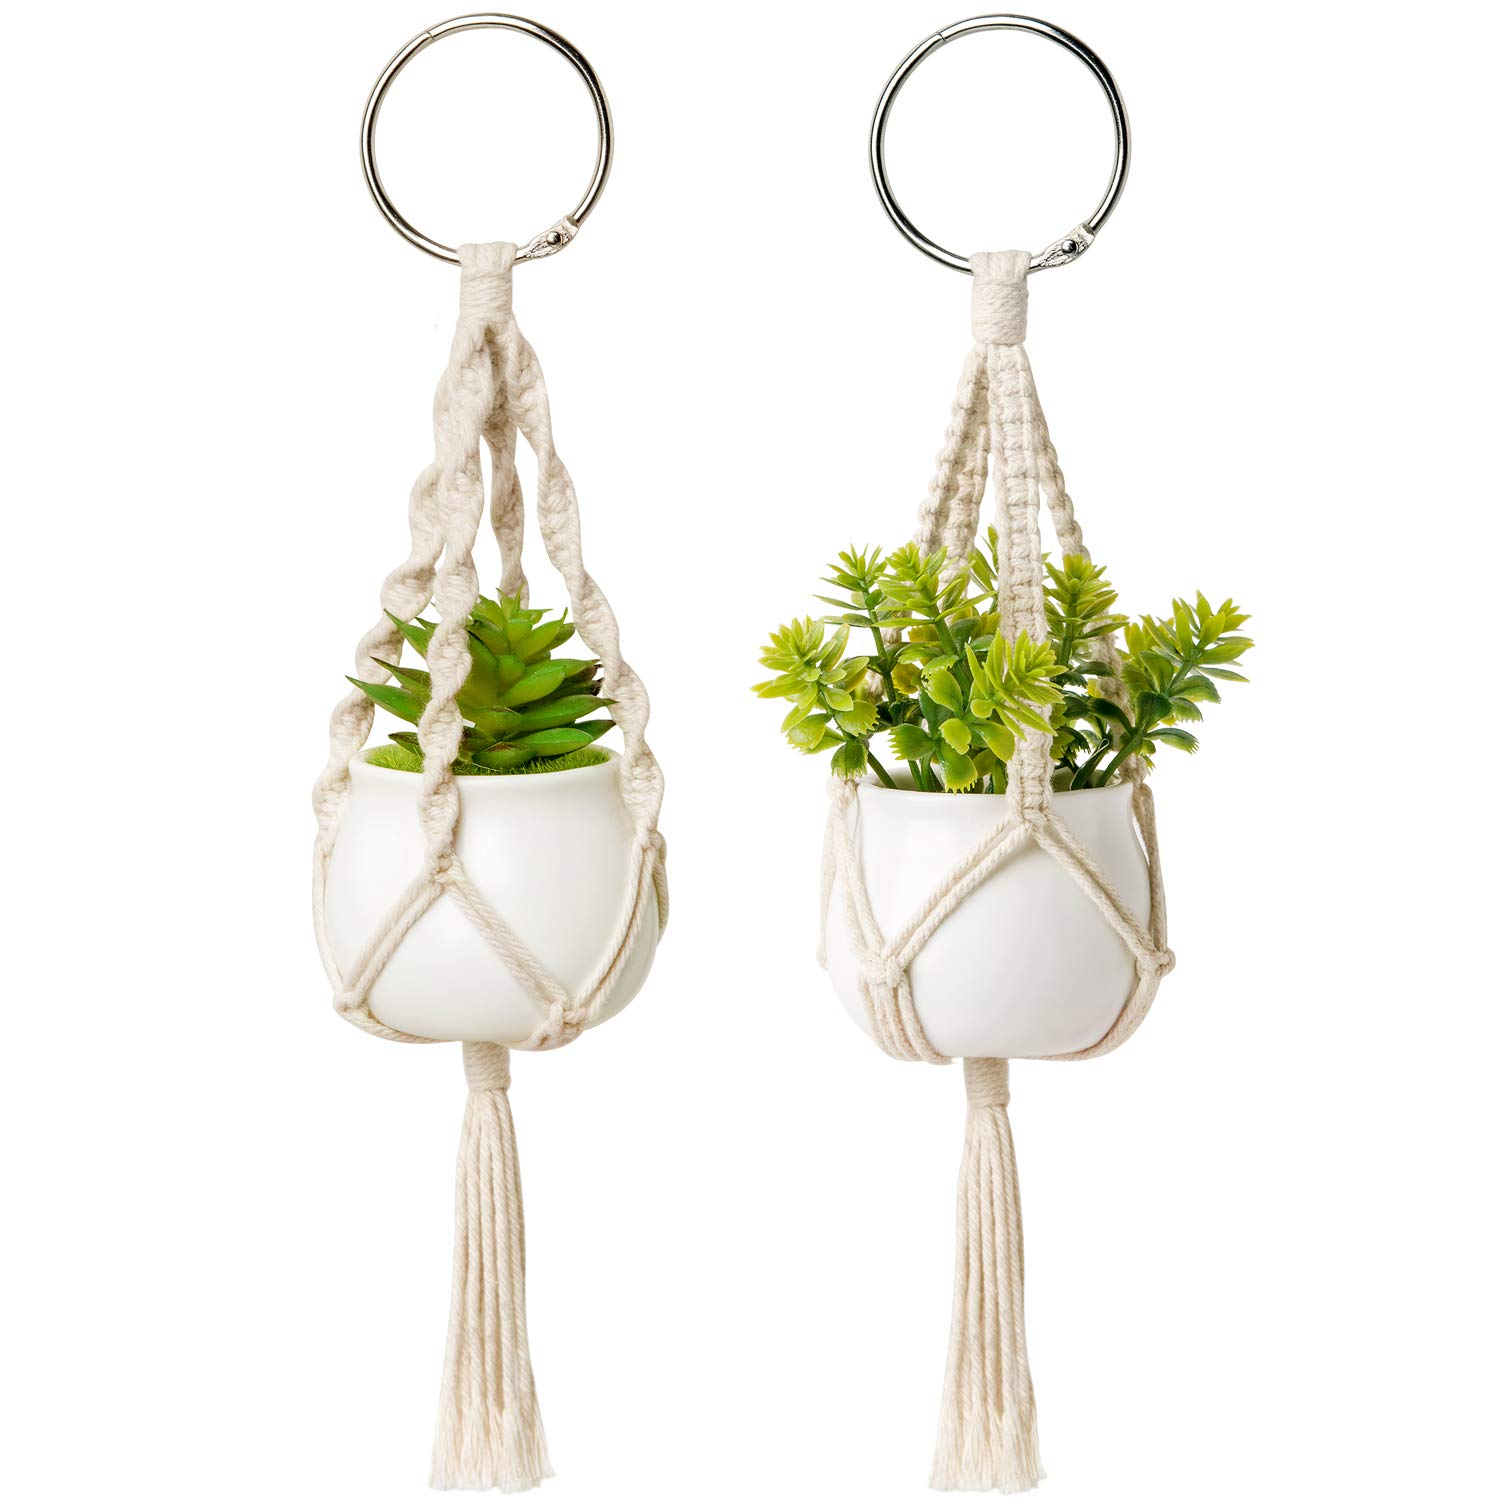 Dahey Mini Macrame Plant Car Hanging 2 Pcs Hanging Succulent for Car Decorations Handmade Rear View Mirrior Charm Boho Planter with Ceramic Pot and Plant for Car Home Decor,Unique Gifts, 10.5 inch